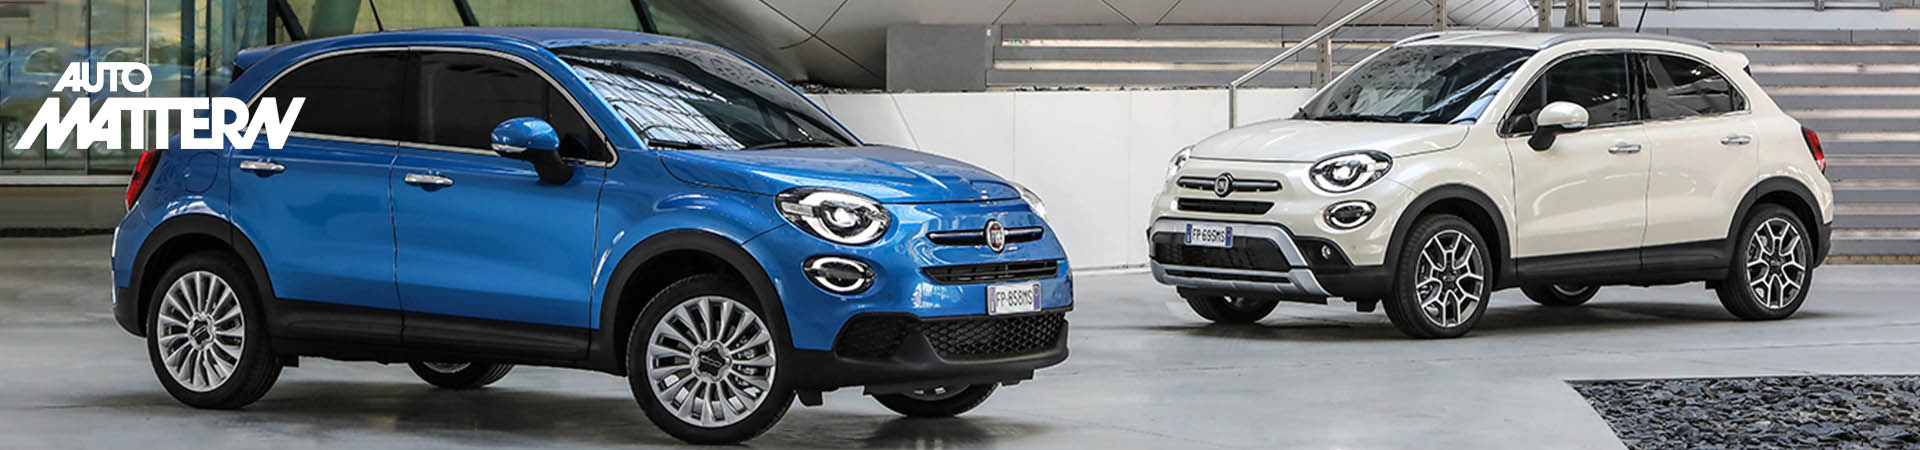 Fiat 500X Cross Angebot